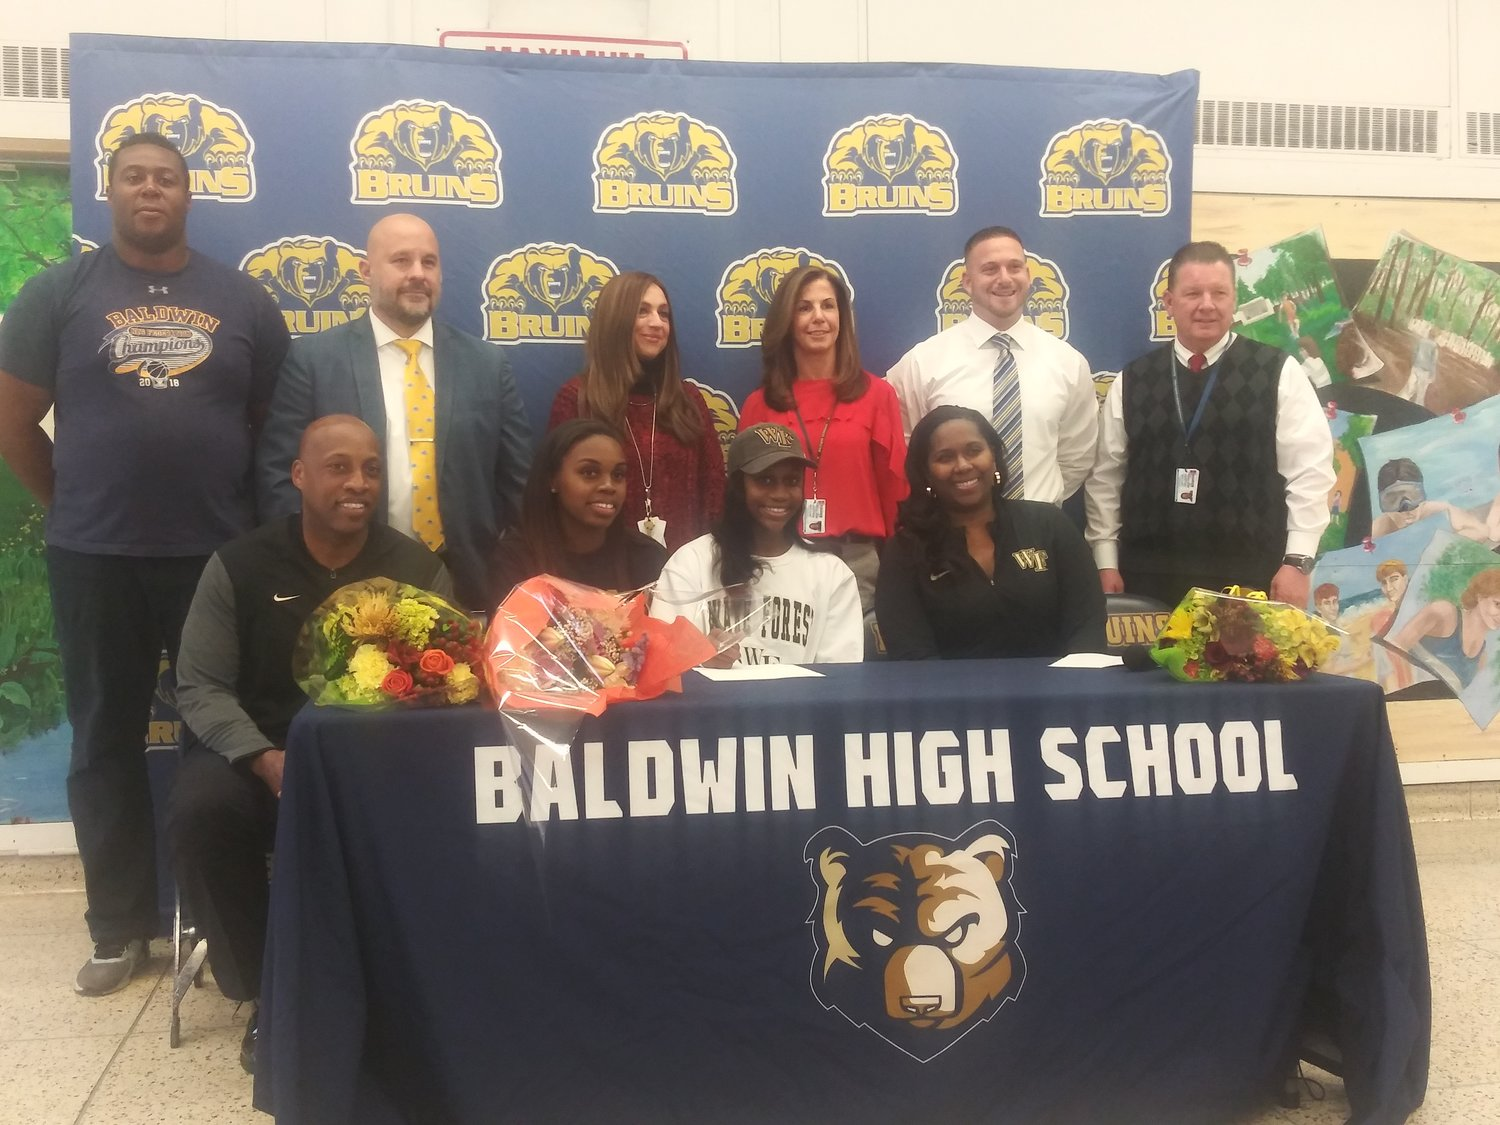 Photos by Anthony O'Reilly/Herald